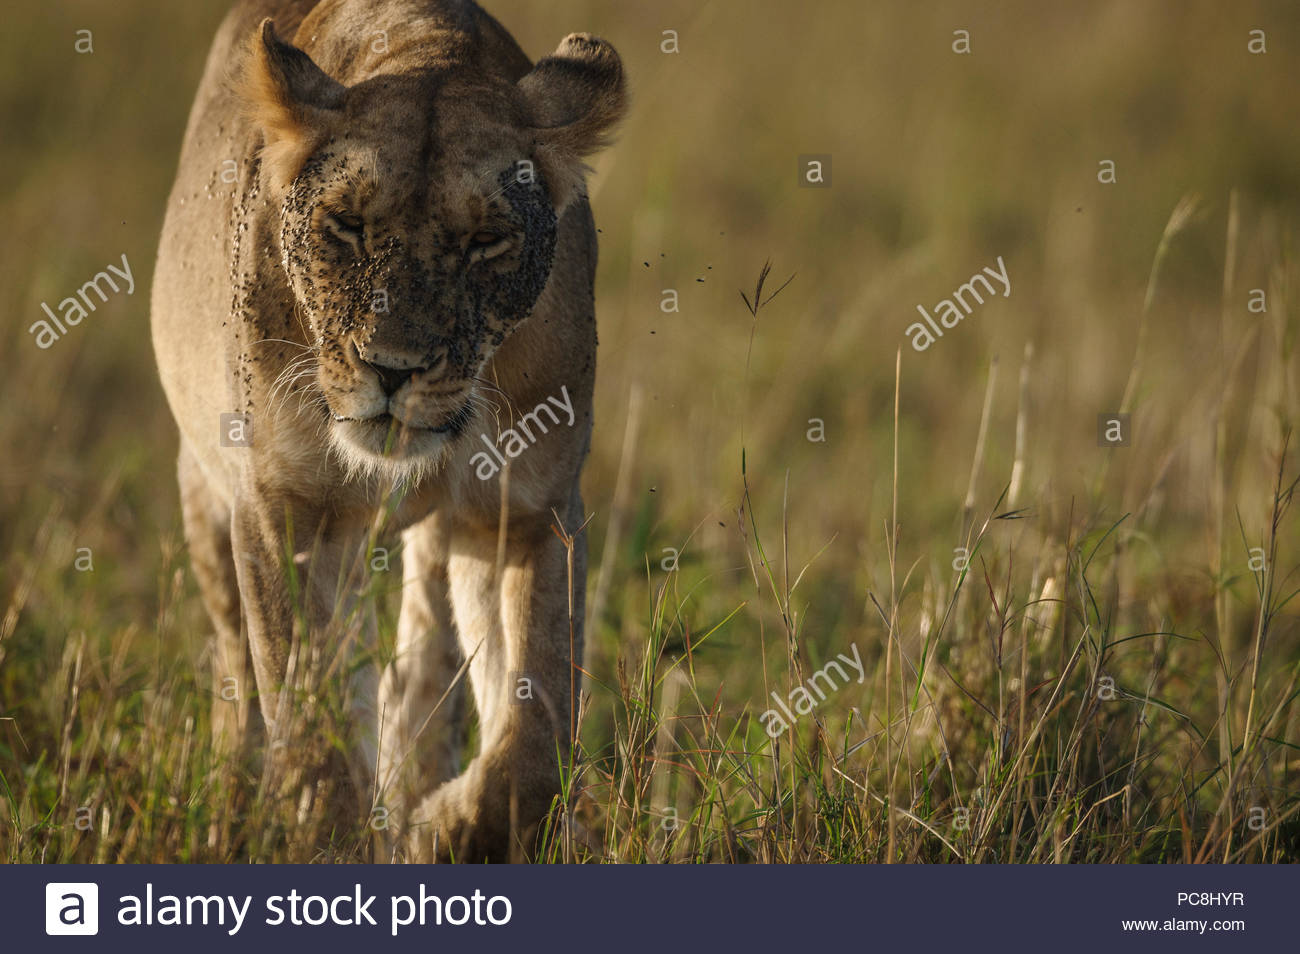 A lioness, Panthera leo, walks in dry grass with flies covering her face. - Stock Image